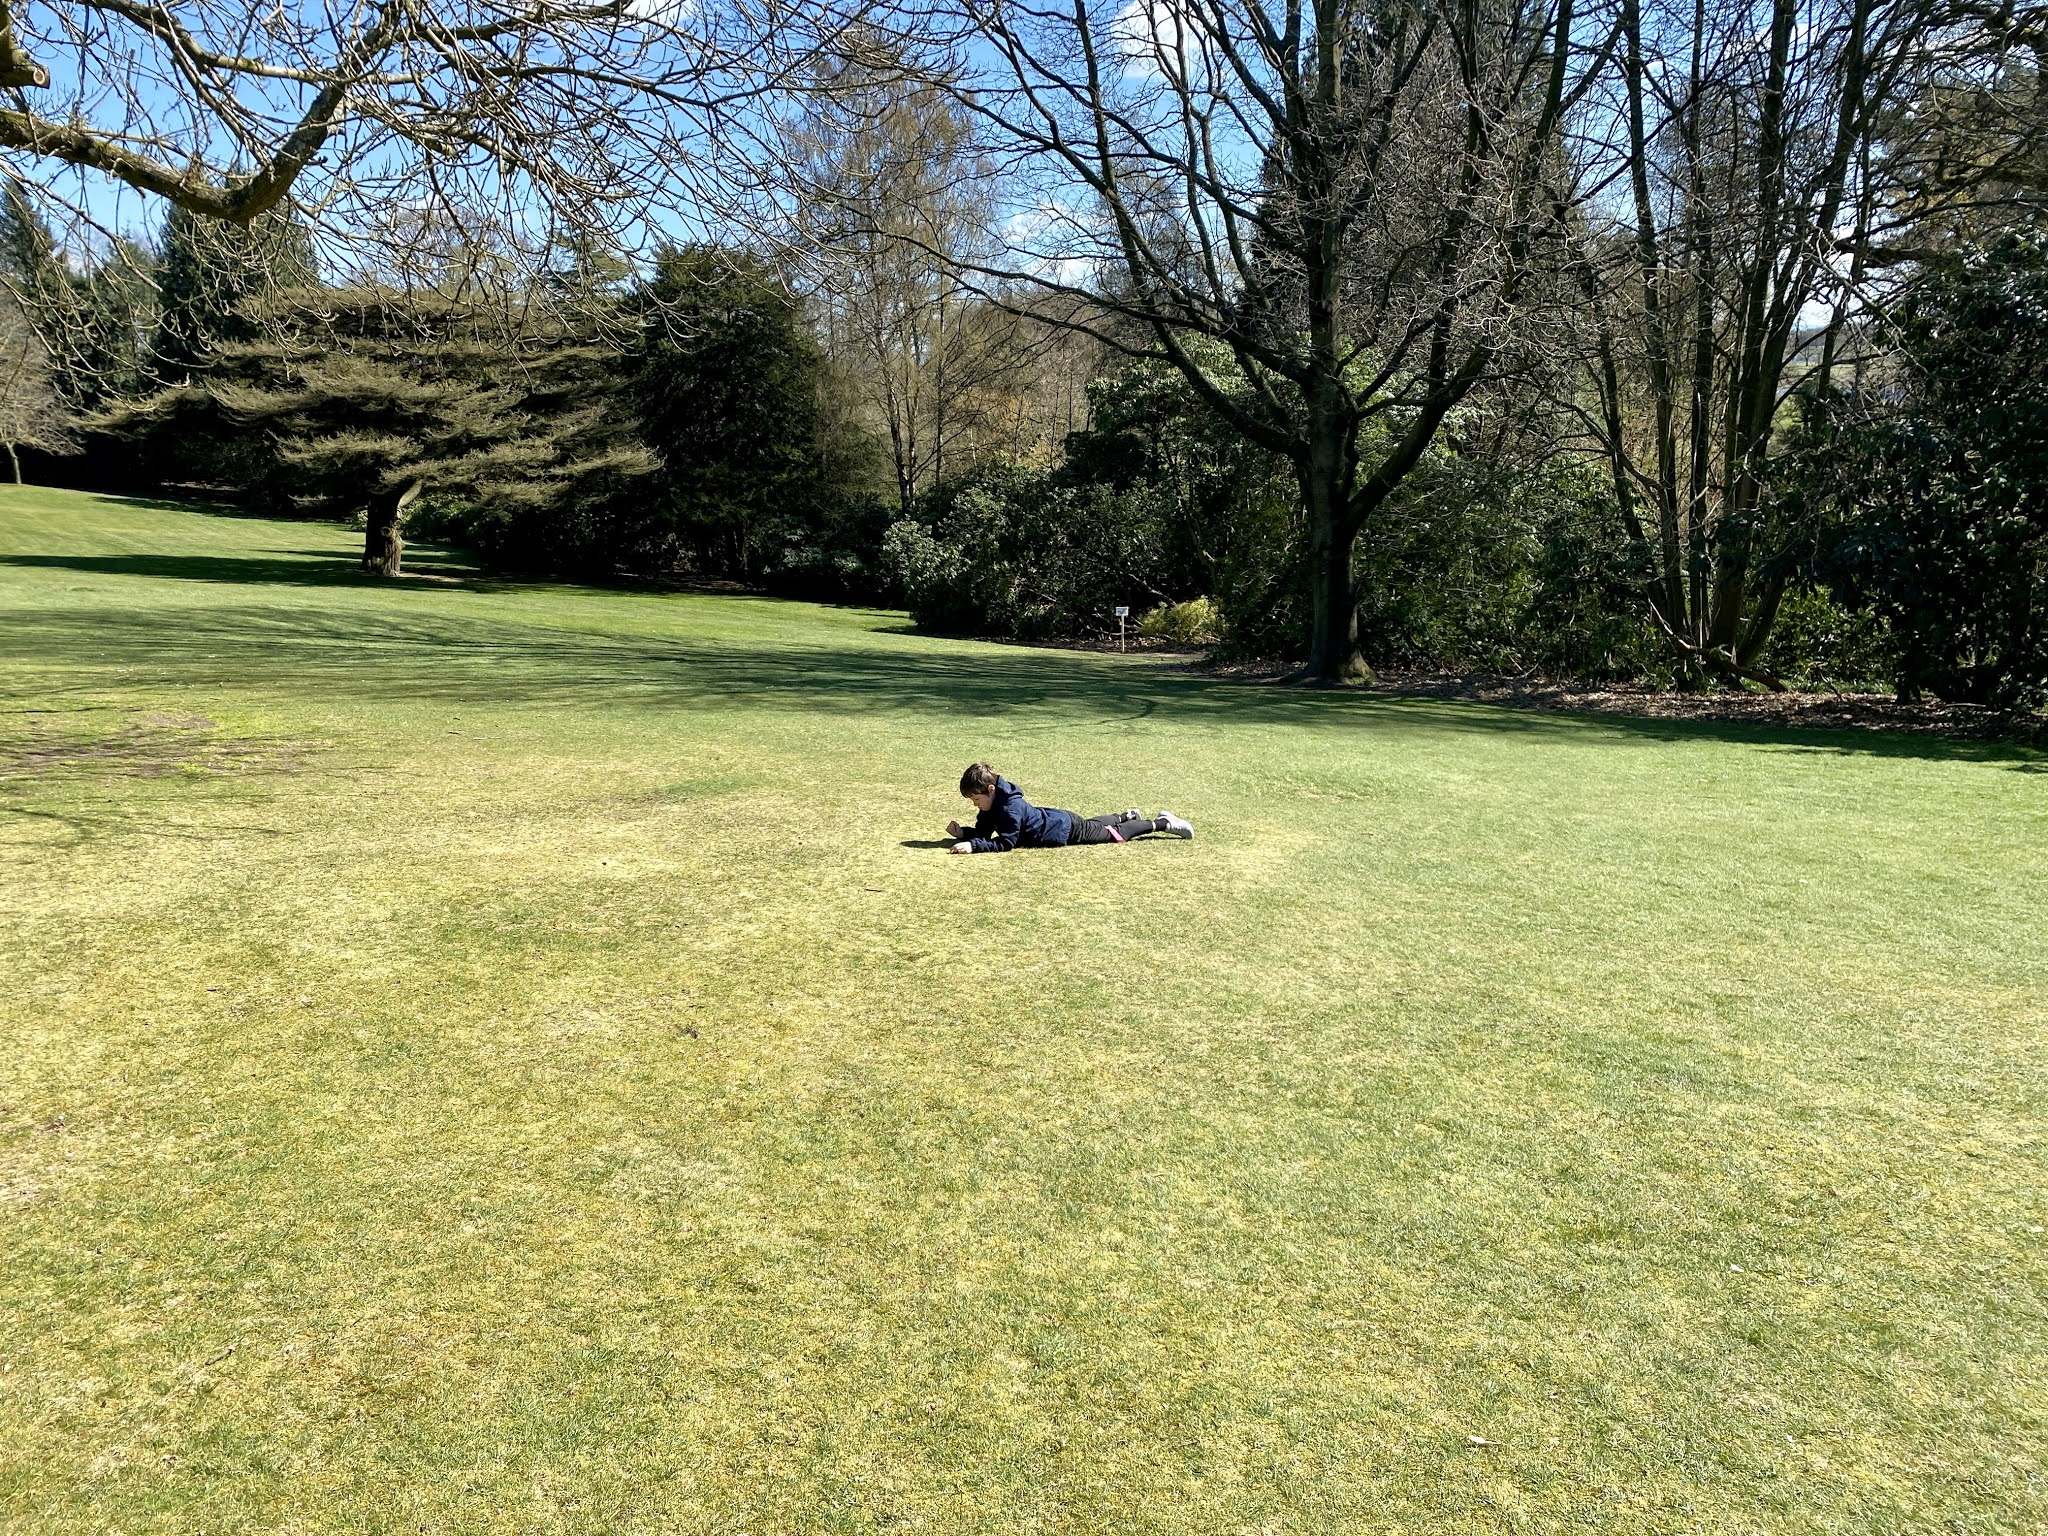 boy on grass